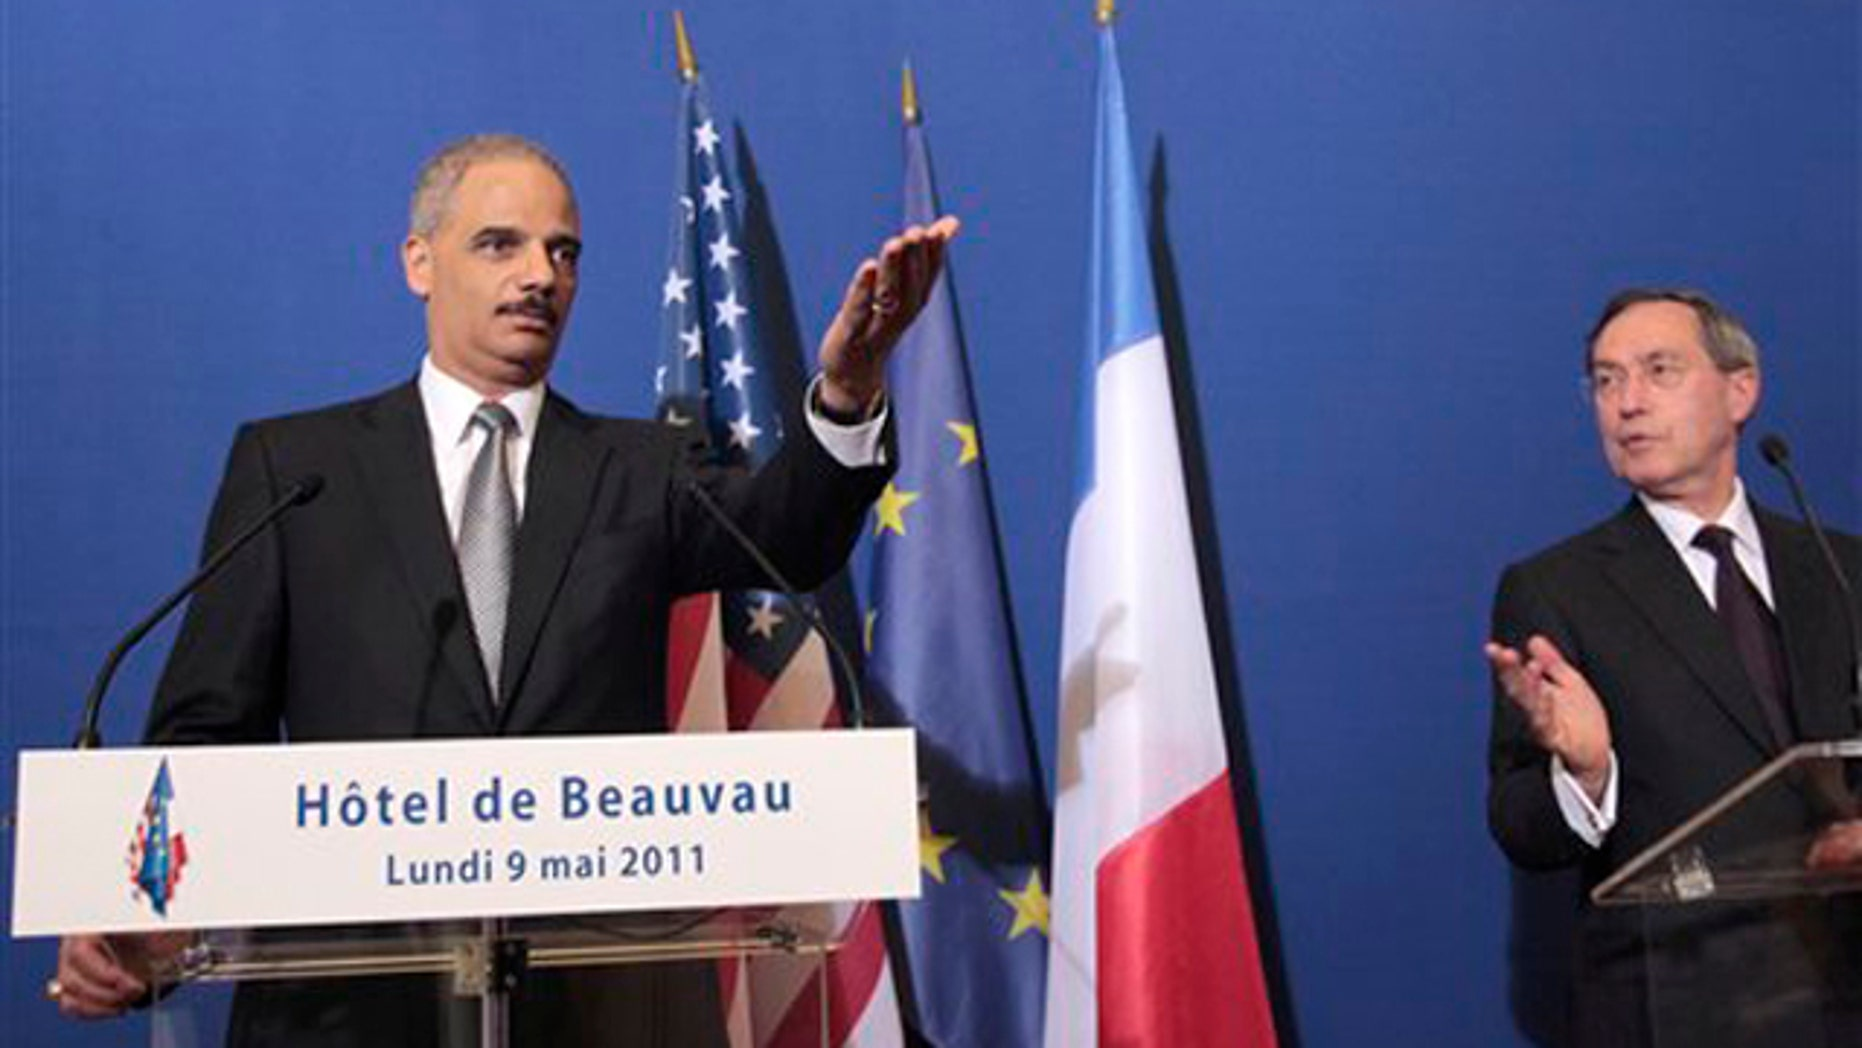 Attorney General Eric Holder, left, gestures during a press conference following a meeting with French Interior Minister Claude Gueant in Paris May 9.